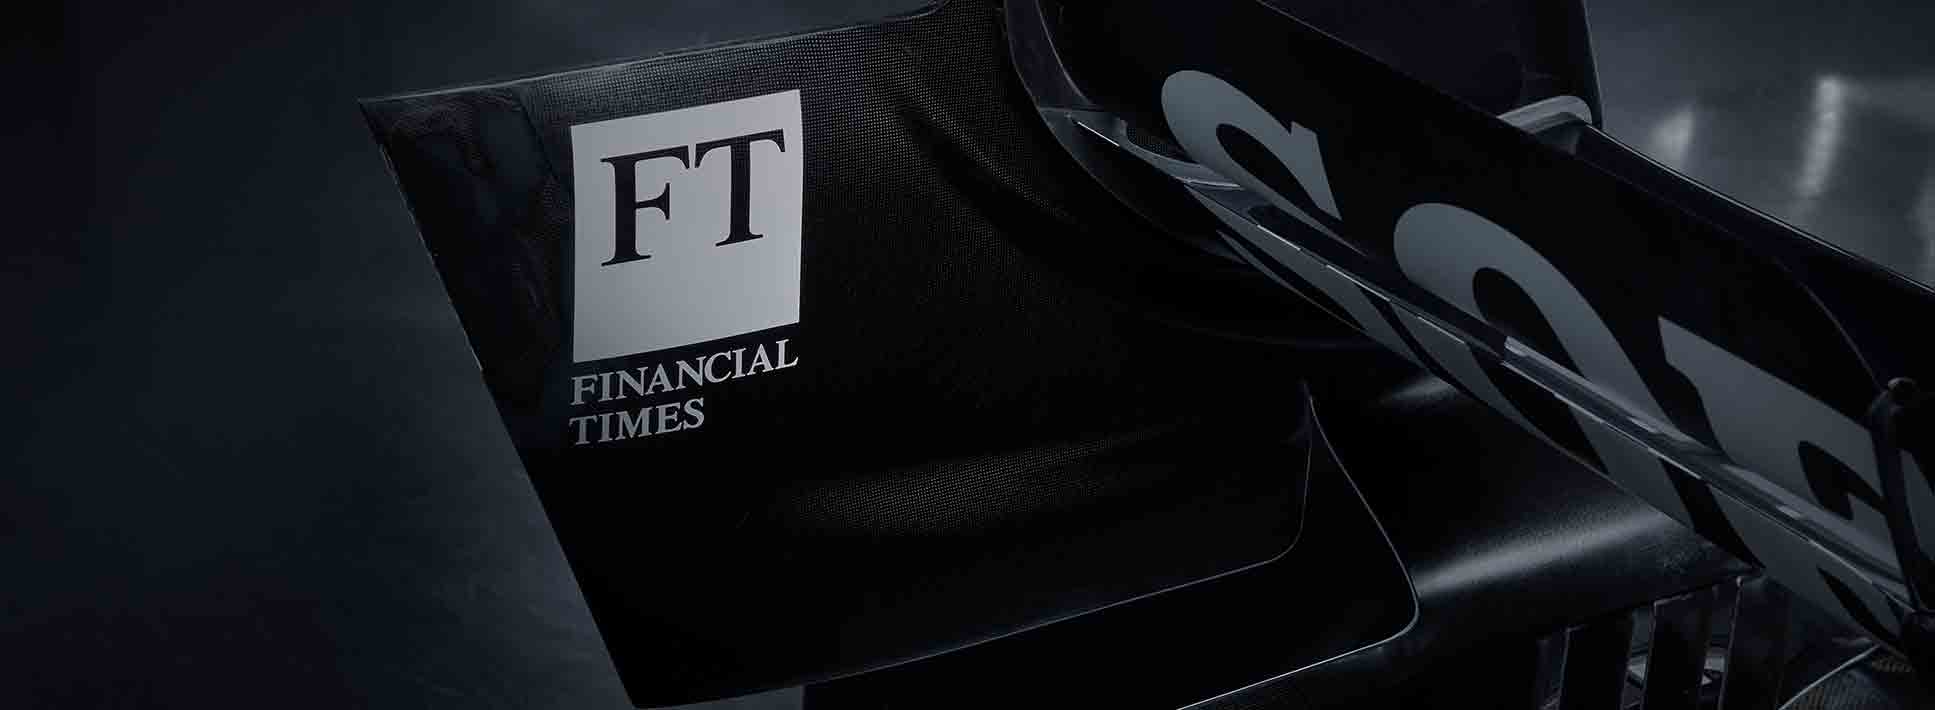 Williams Racing and the Financial Times Renew Partnership